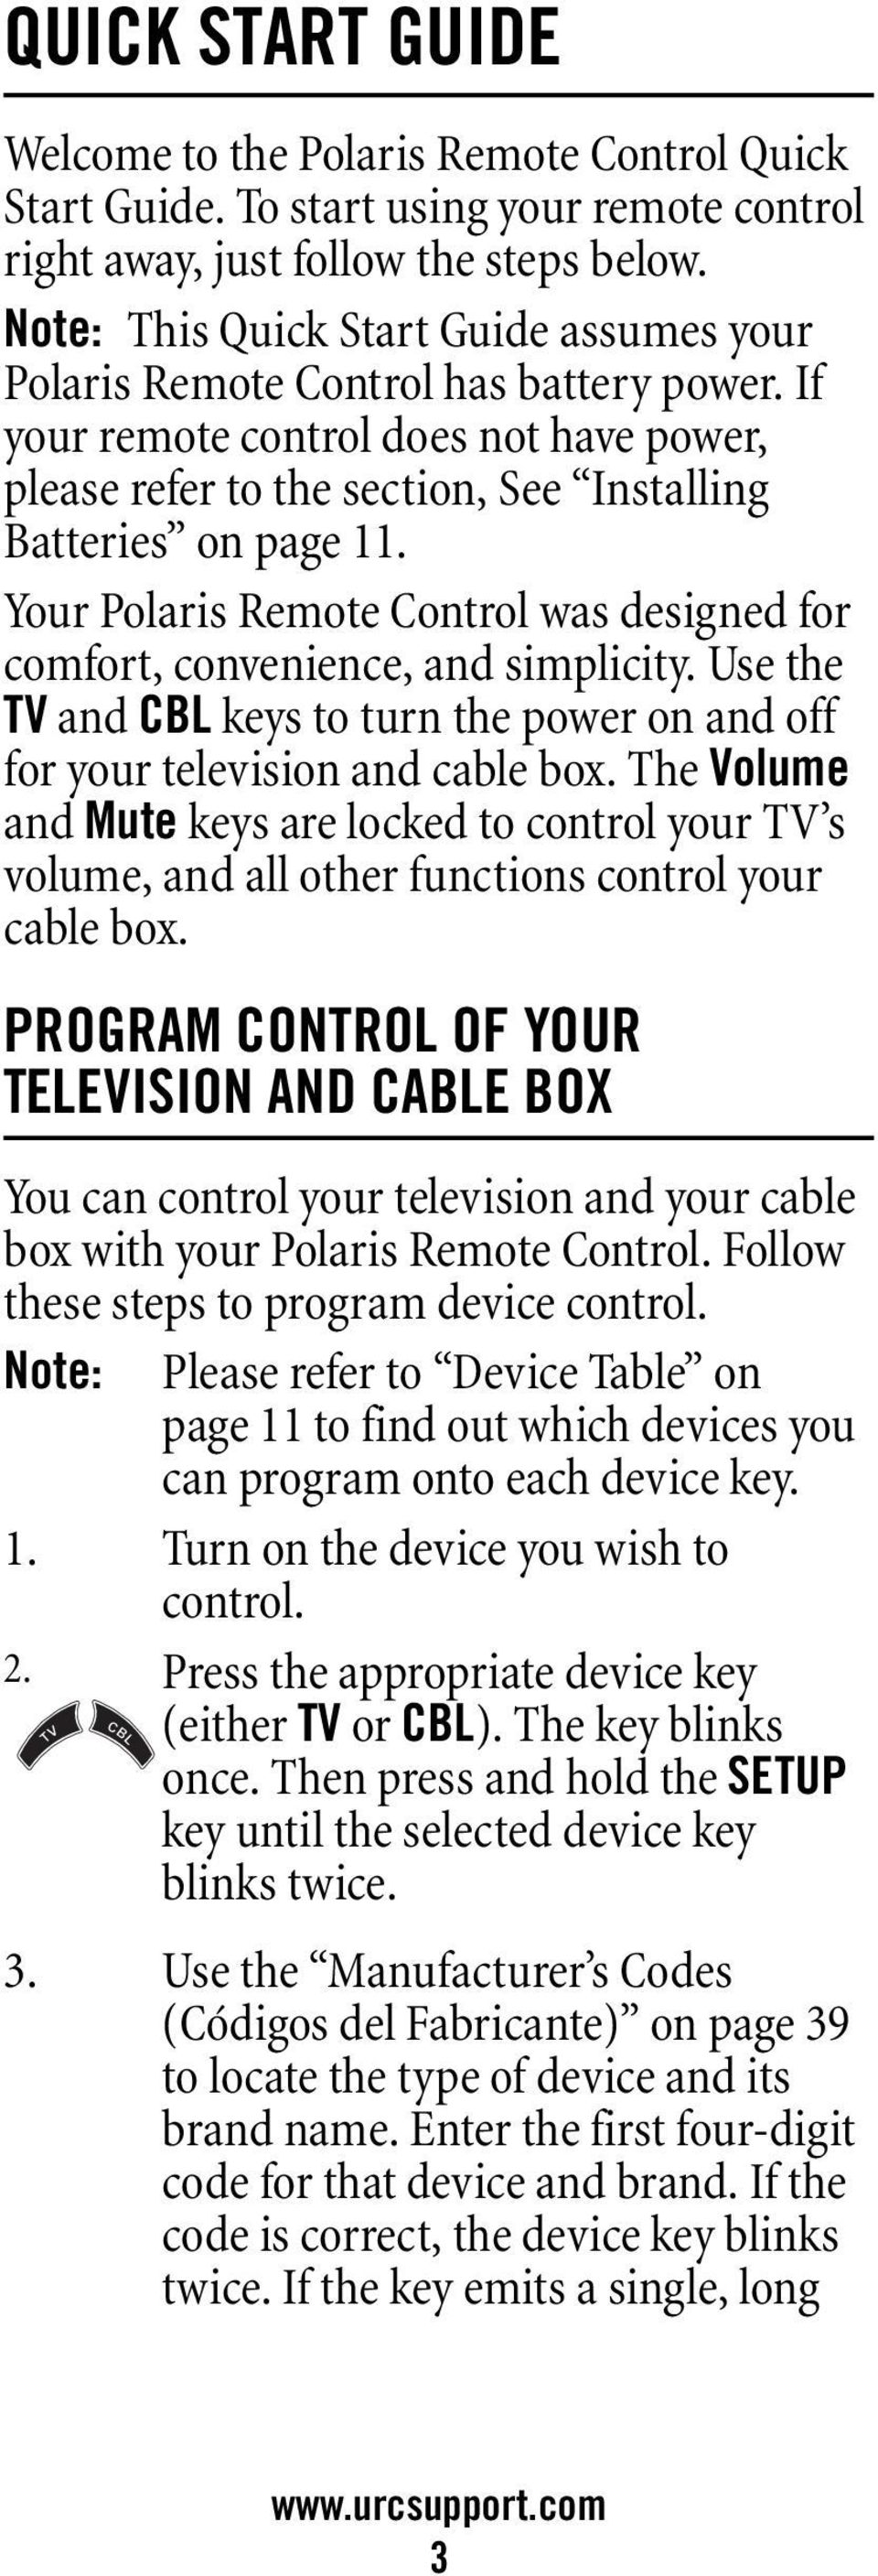 Your Polaris Remote Control was designed for comfort, convenience, and simplicity. Use the TV and CBL keys to turn the power on and off for your television and cable box.